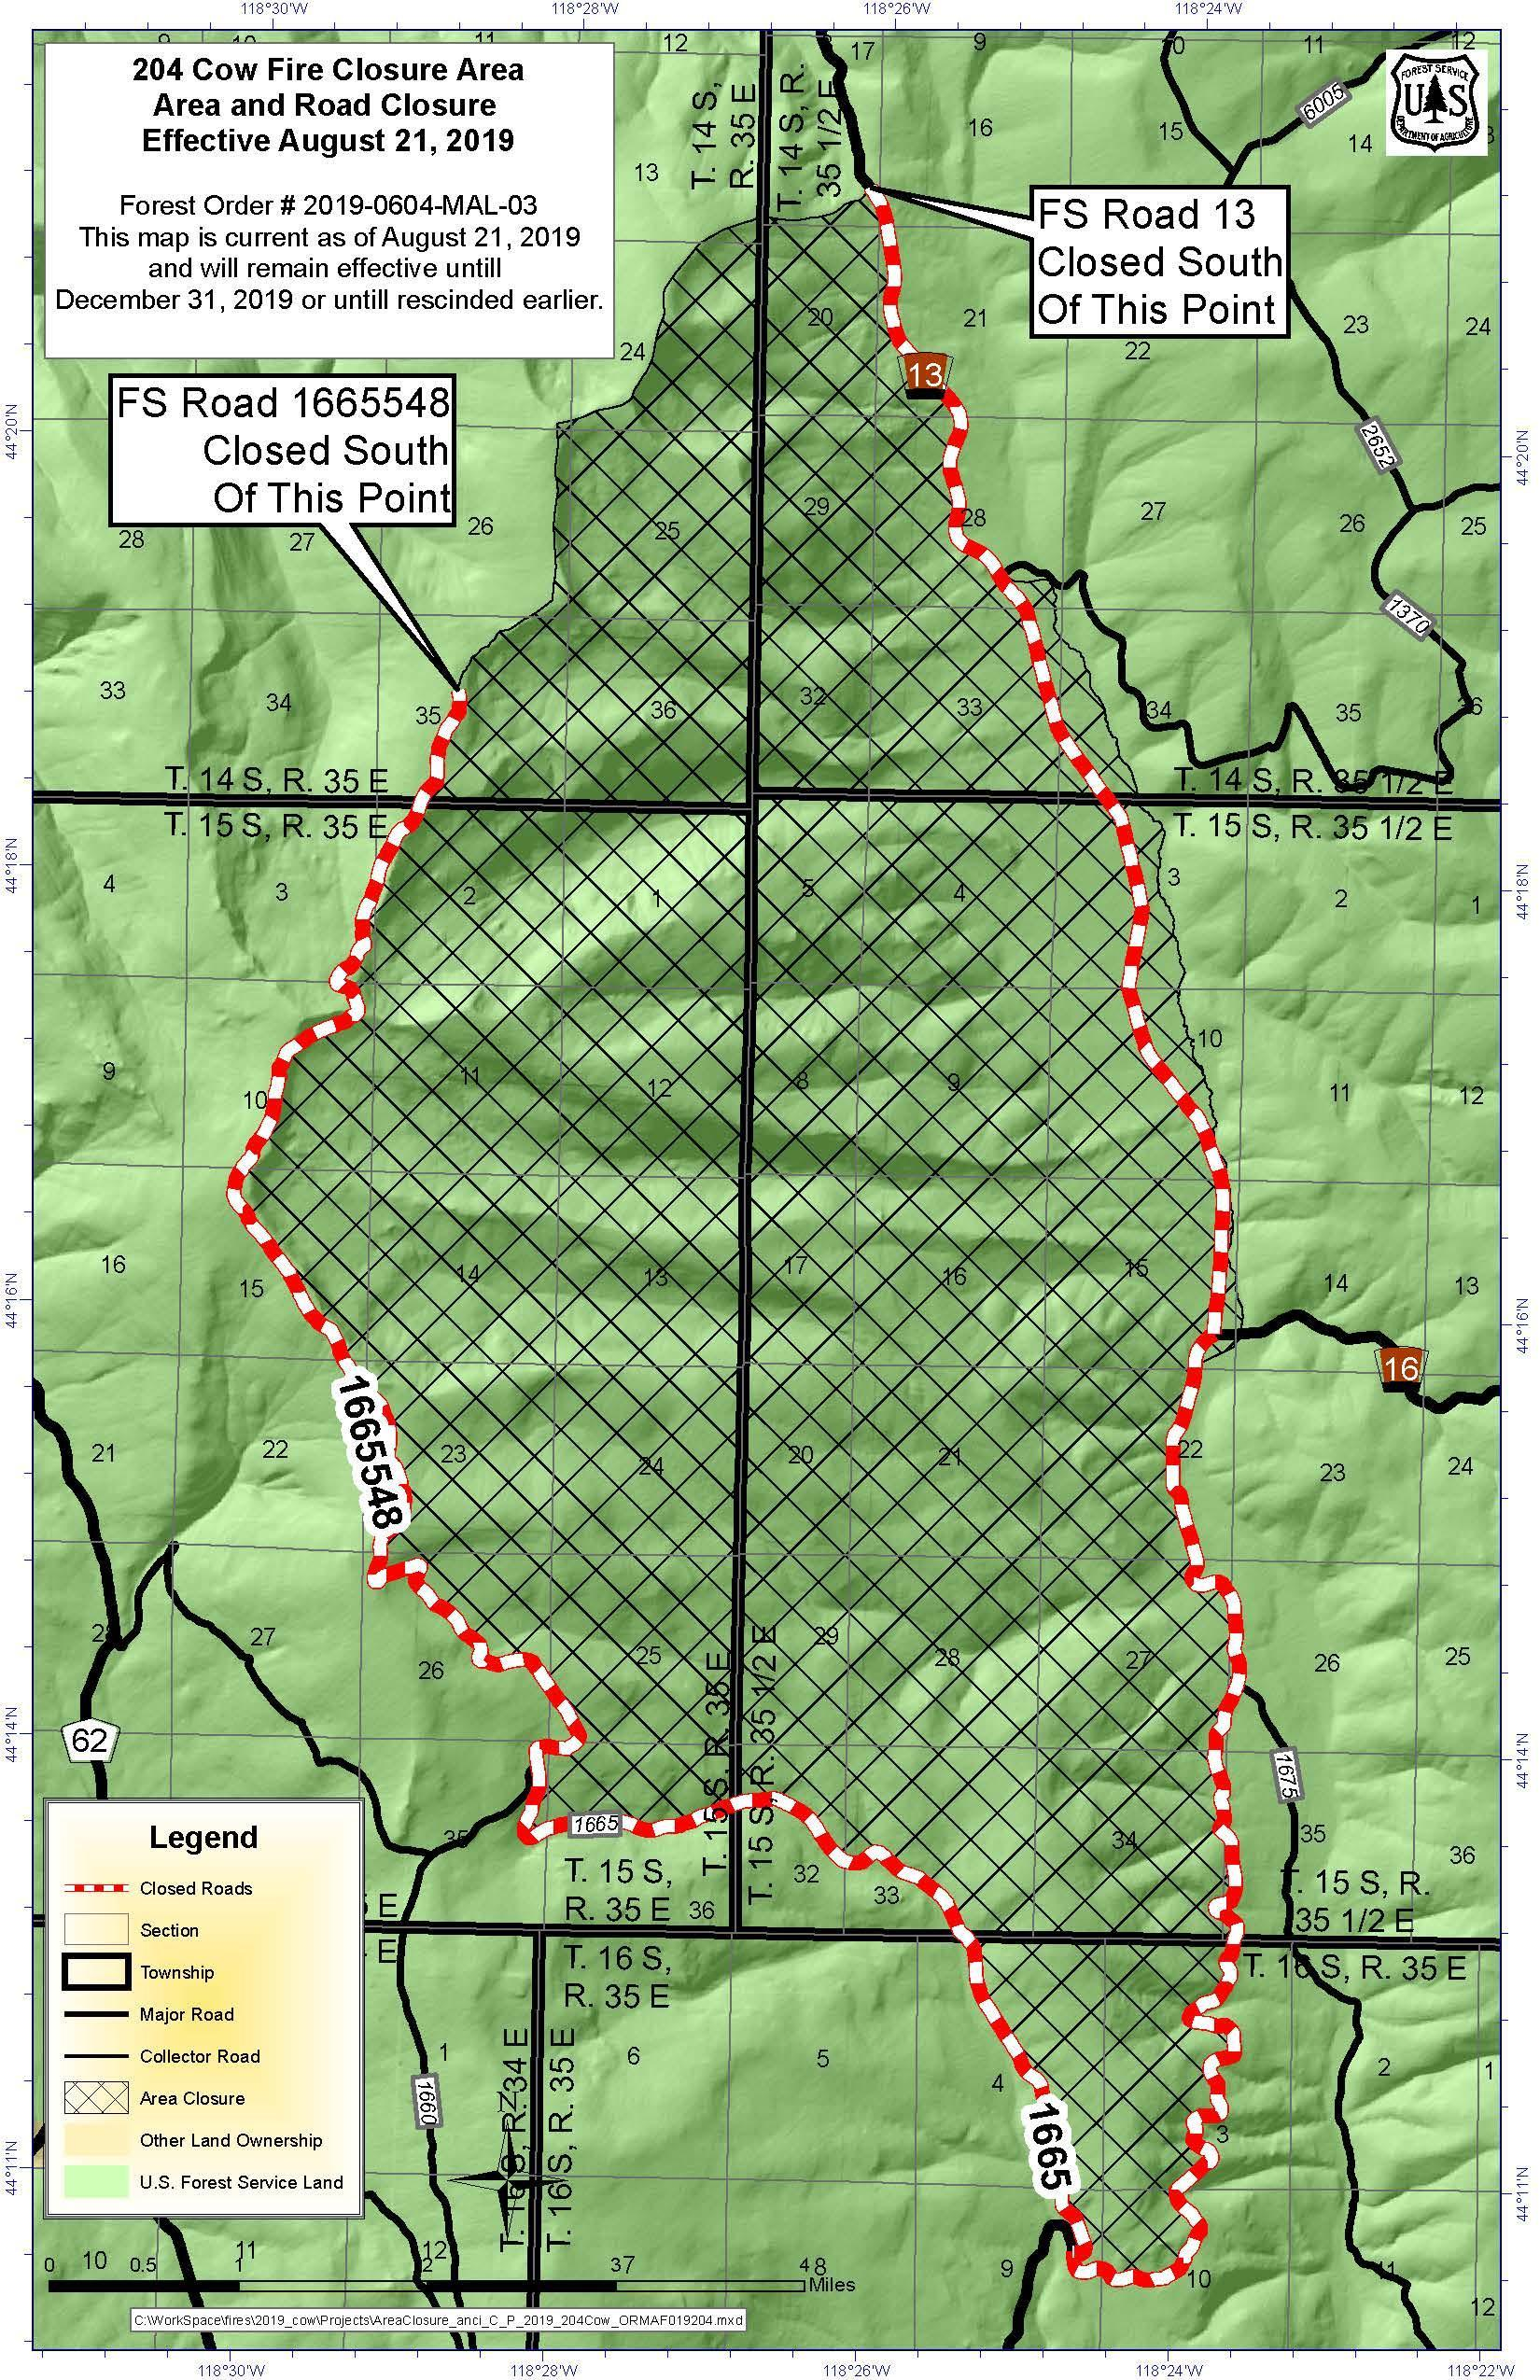 Cow Fire Area Closure Map - InciWeb the Incident Information